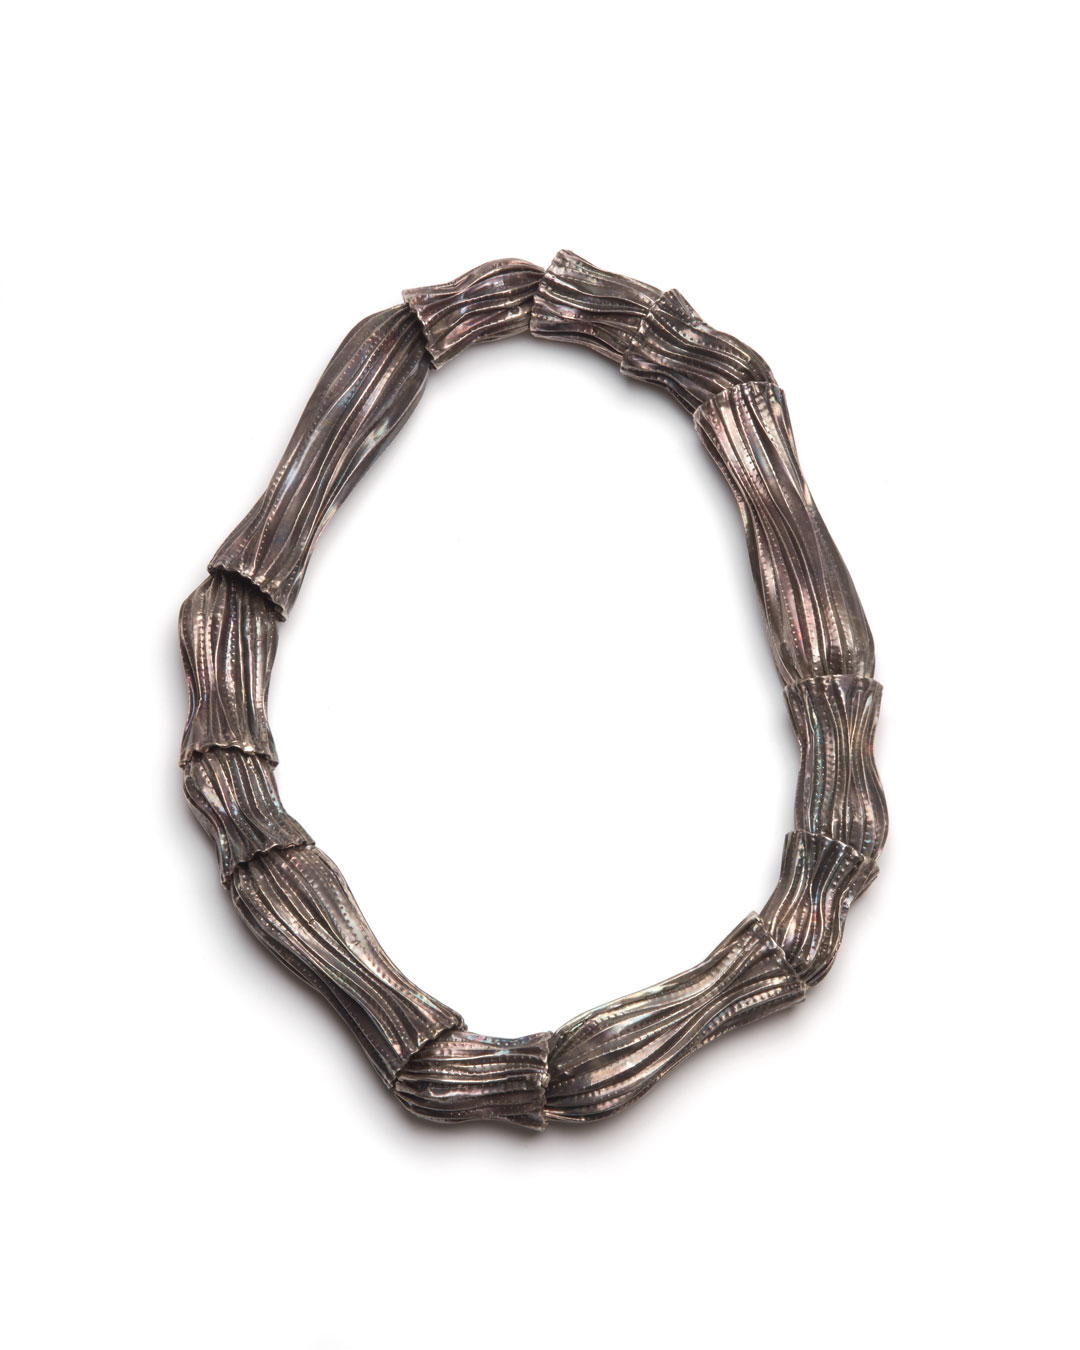 Susanna Loew, Seelilie, 2006, necklace; silver, silk, 250 x 200 x 30 mm, €1400